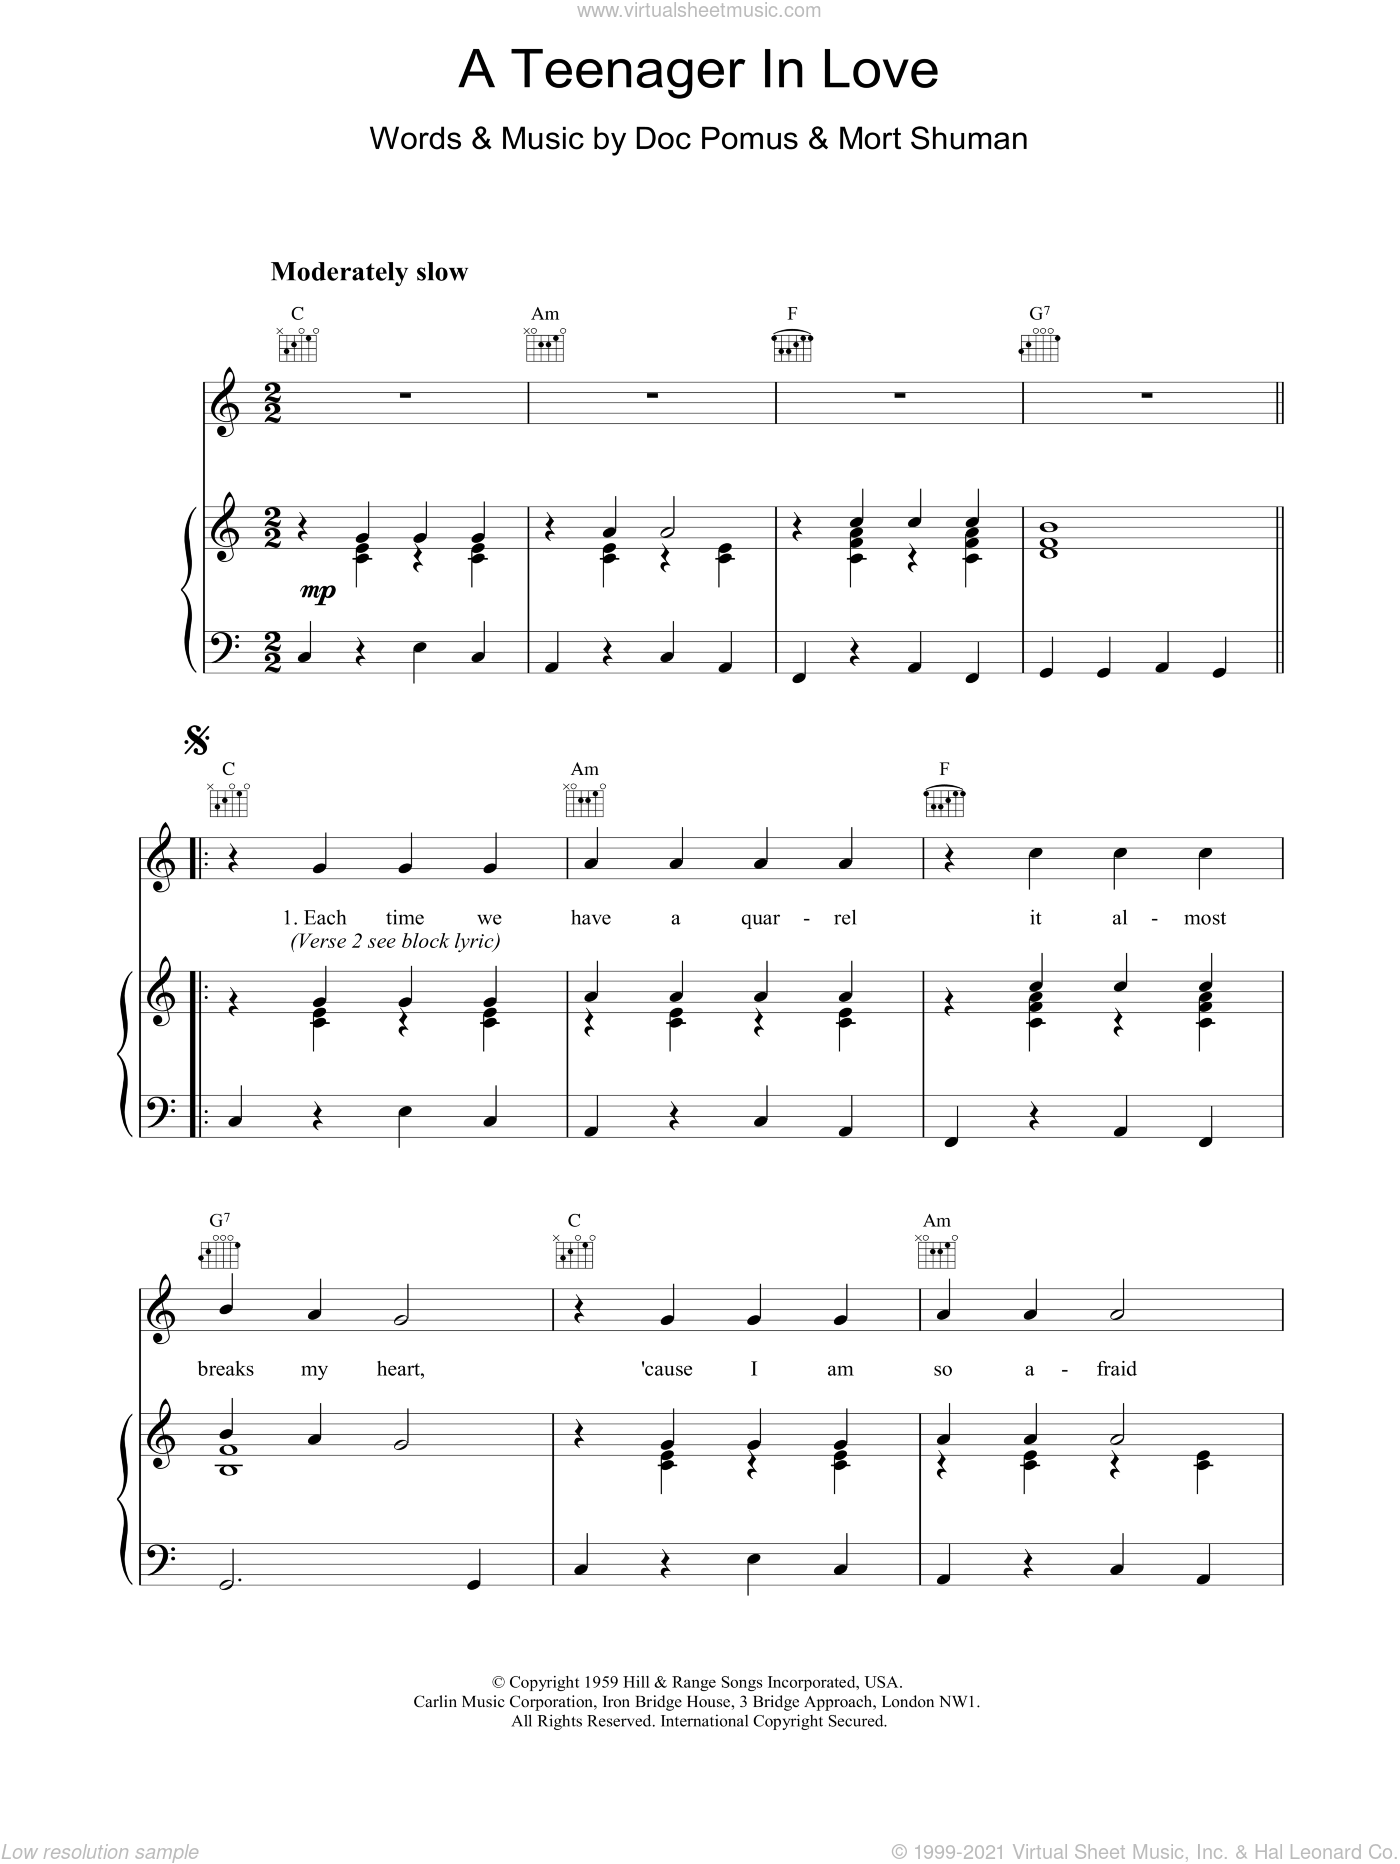 A Teenager In Love sheet music for voice, piano or guitar by Dion & The Belmonts, Doc Pomus, Jerome Pomus and Mort Shuman, intermediate skill level